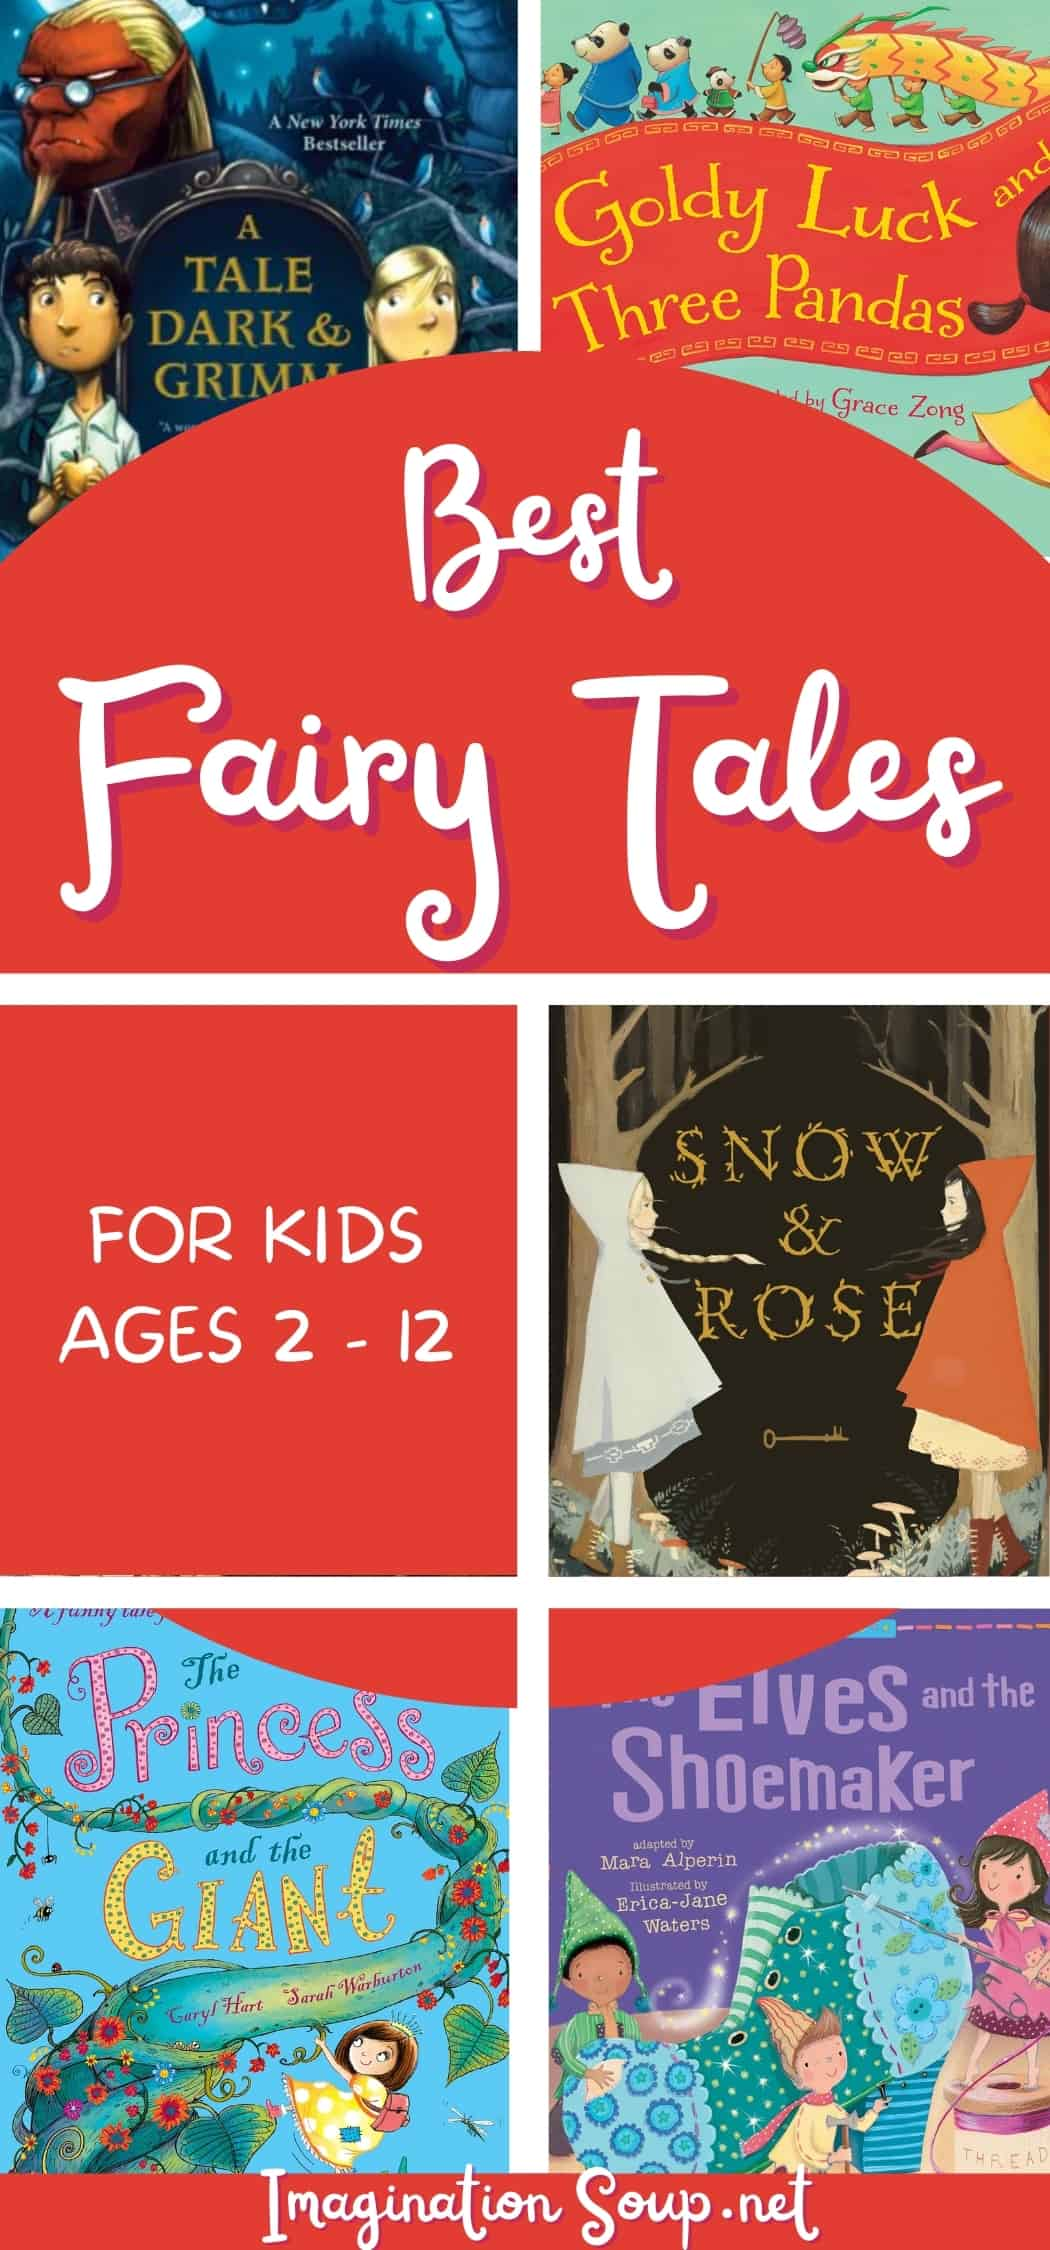 Best Fairy Tales for Kids Ages 2 to 12